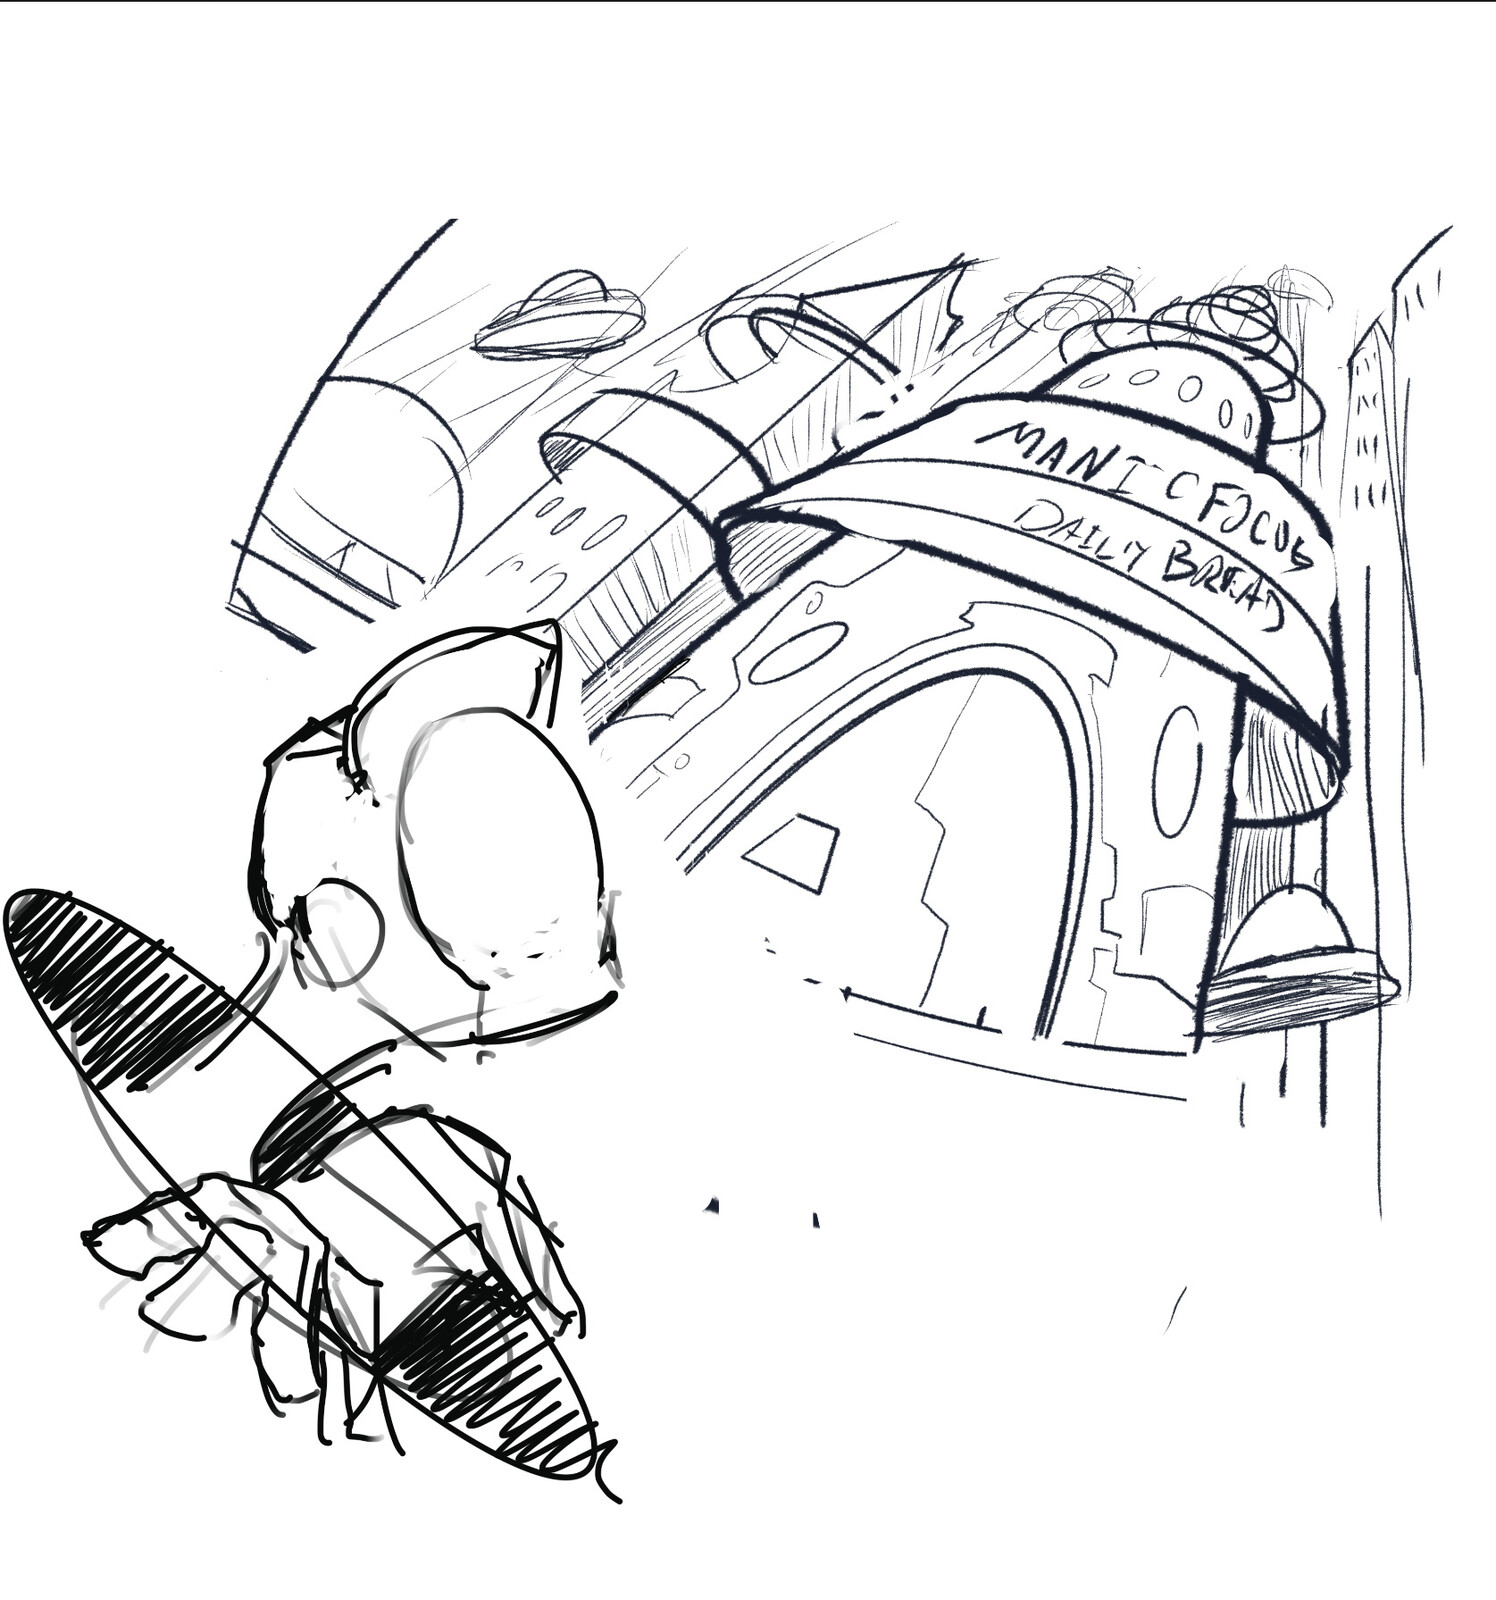 Concept sketch for pitch